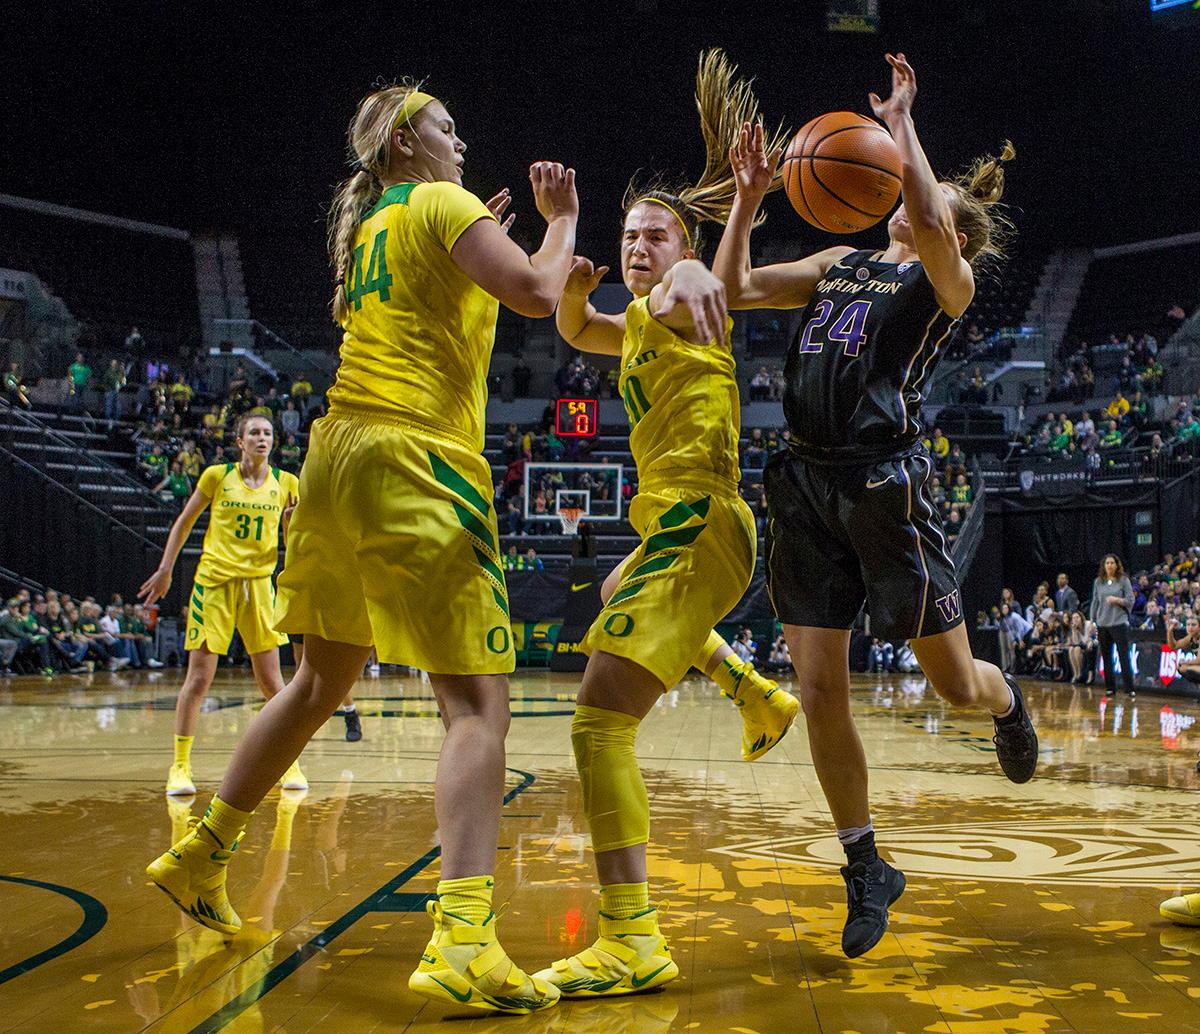 Oregon Ducks Sabrina Ionescu (#20) fights for the ball. The Oregon Ducks defeated the Washington Huskies 94-83 on Sunday at Matthew Knight Arena. The victory was Head Coach Kelly Graves' 500th career win. Sabrina Ionescu also set the new NCAA all time record of 8 triple doubles in just 48 games. The previous record was 7 triple doubles in 124 games, held by Susie McConnell at Penn State. The Ducks will next face off against USC on Friday January 5th in Los Angeles. Photo by Rhianna Gelhart, Oregon News Lab